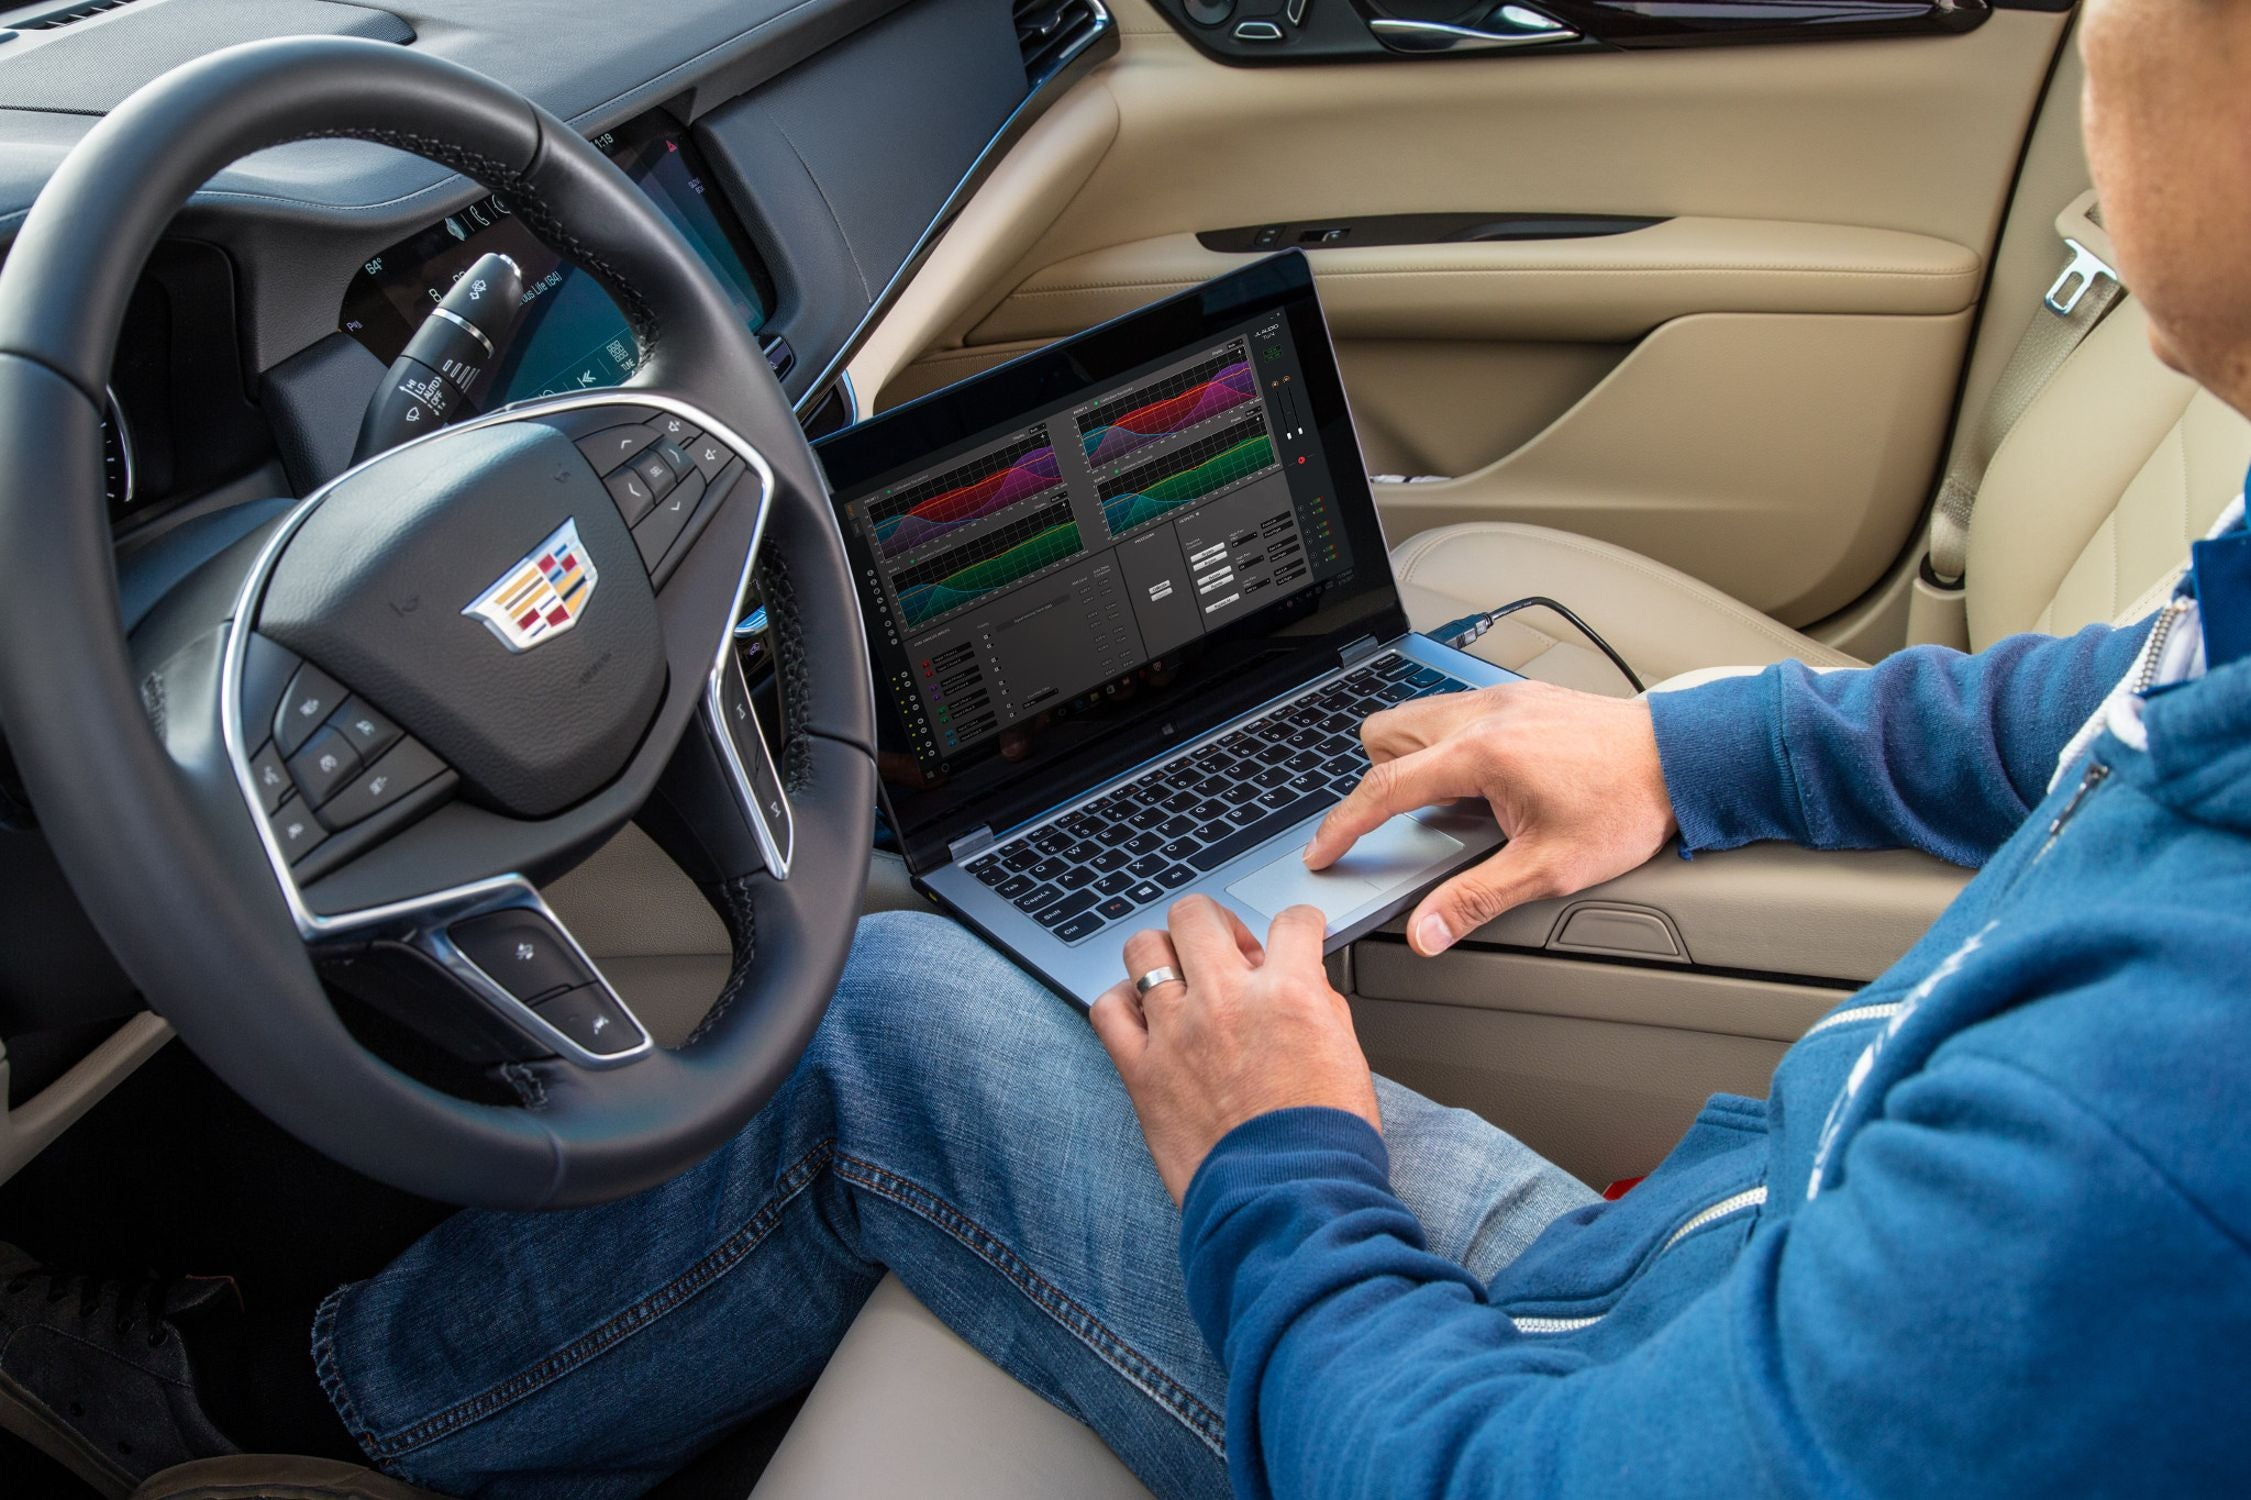 Hand on a Laptop Tuning a FiX-86 with TüN Software in a Cadillac